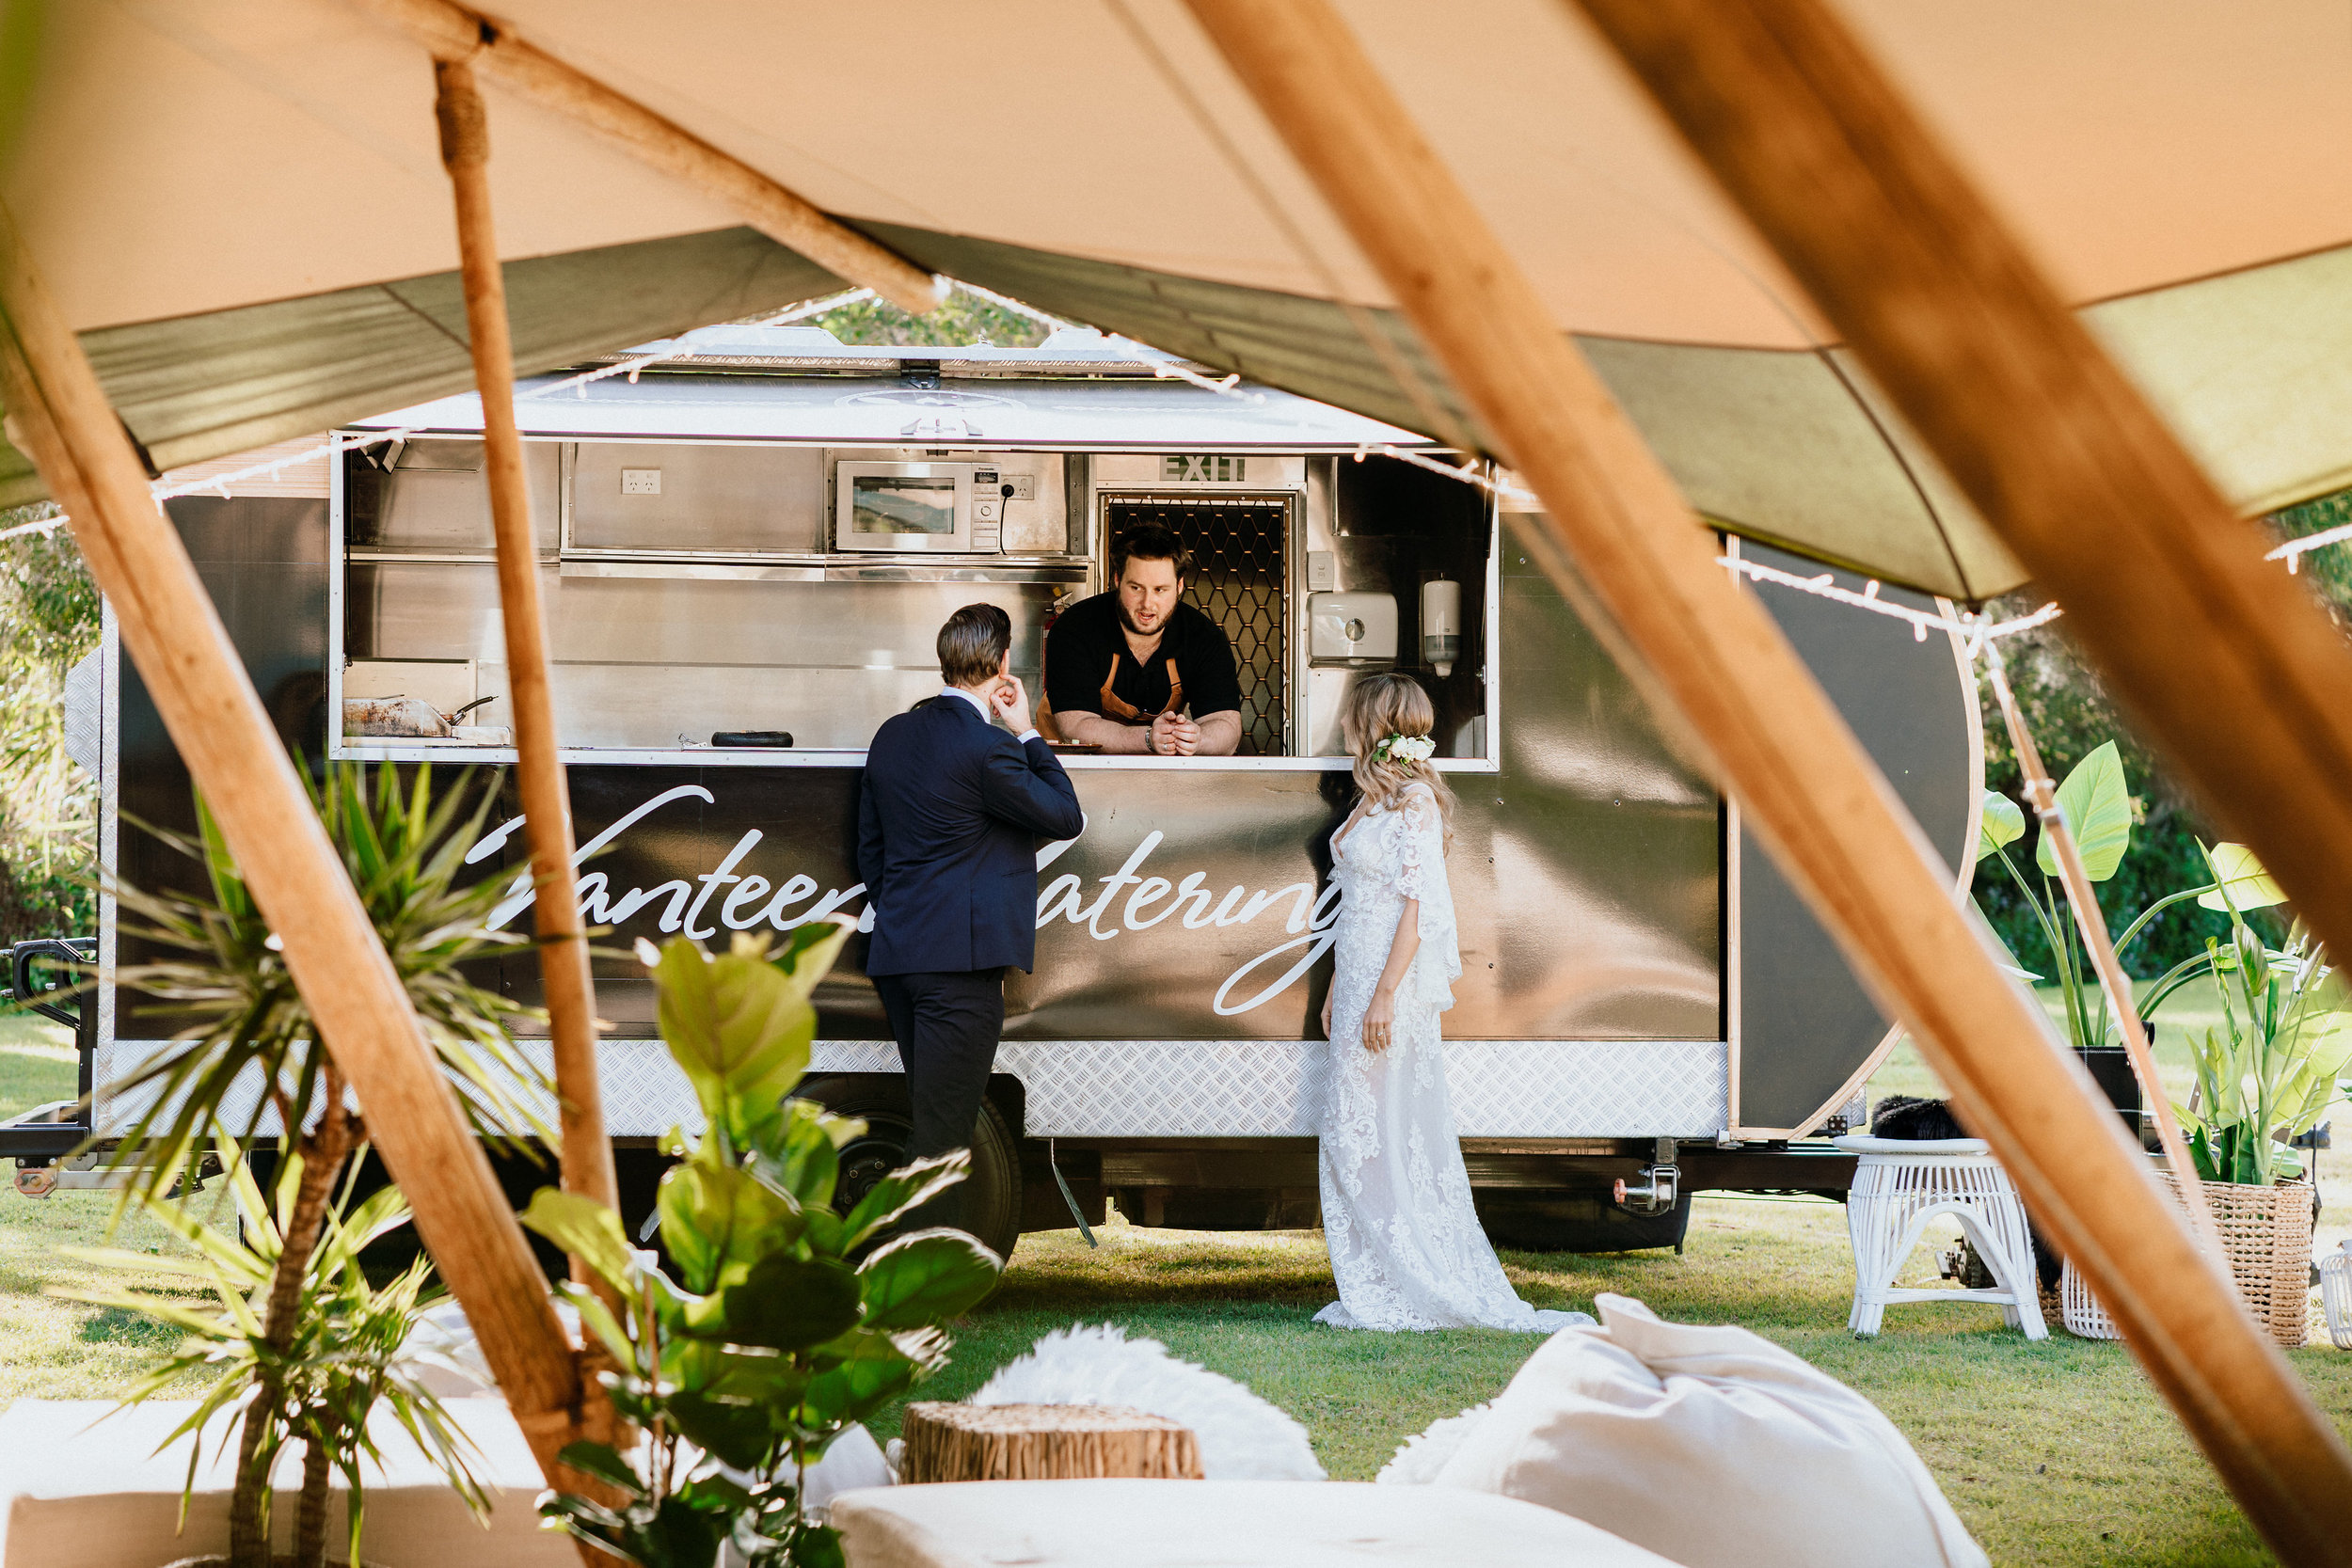 The Brides Tree - Westival on Noosa North Shore   Published on:   @thebridestree   Photography:  @lukemiddlemissphotography  Venue:  @beachroadholidayhomes  Tipi:  @tipiluxe  Styling, decor & stationery:  @splashevents  Florist:  @flaxflower  Dress:  @whitelilycouture  Suit:  @suitsdirect  Makeup:  @boudoir_blush_beautyandmakeup  Hair:  @evalynparsonsweddings  Catering:  @vanteencatering  Cake:  @chocolate2chilli  Photo Booth:  @kombi_photobooth  Celebrant:  @kathtilly_celebrant  Models: Tim & Deminique  @imodelsaust